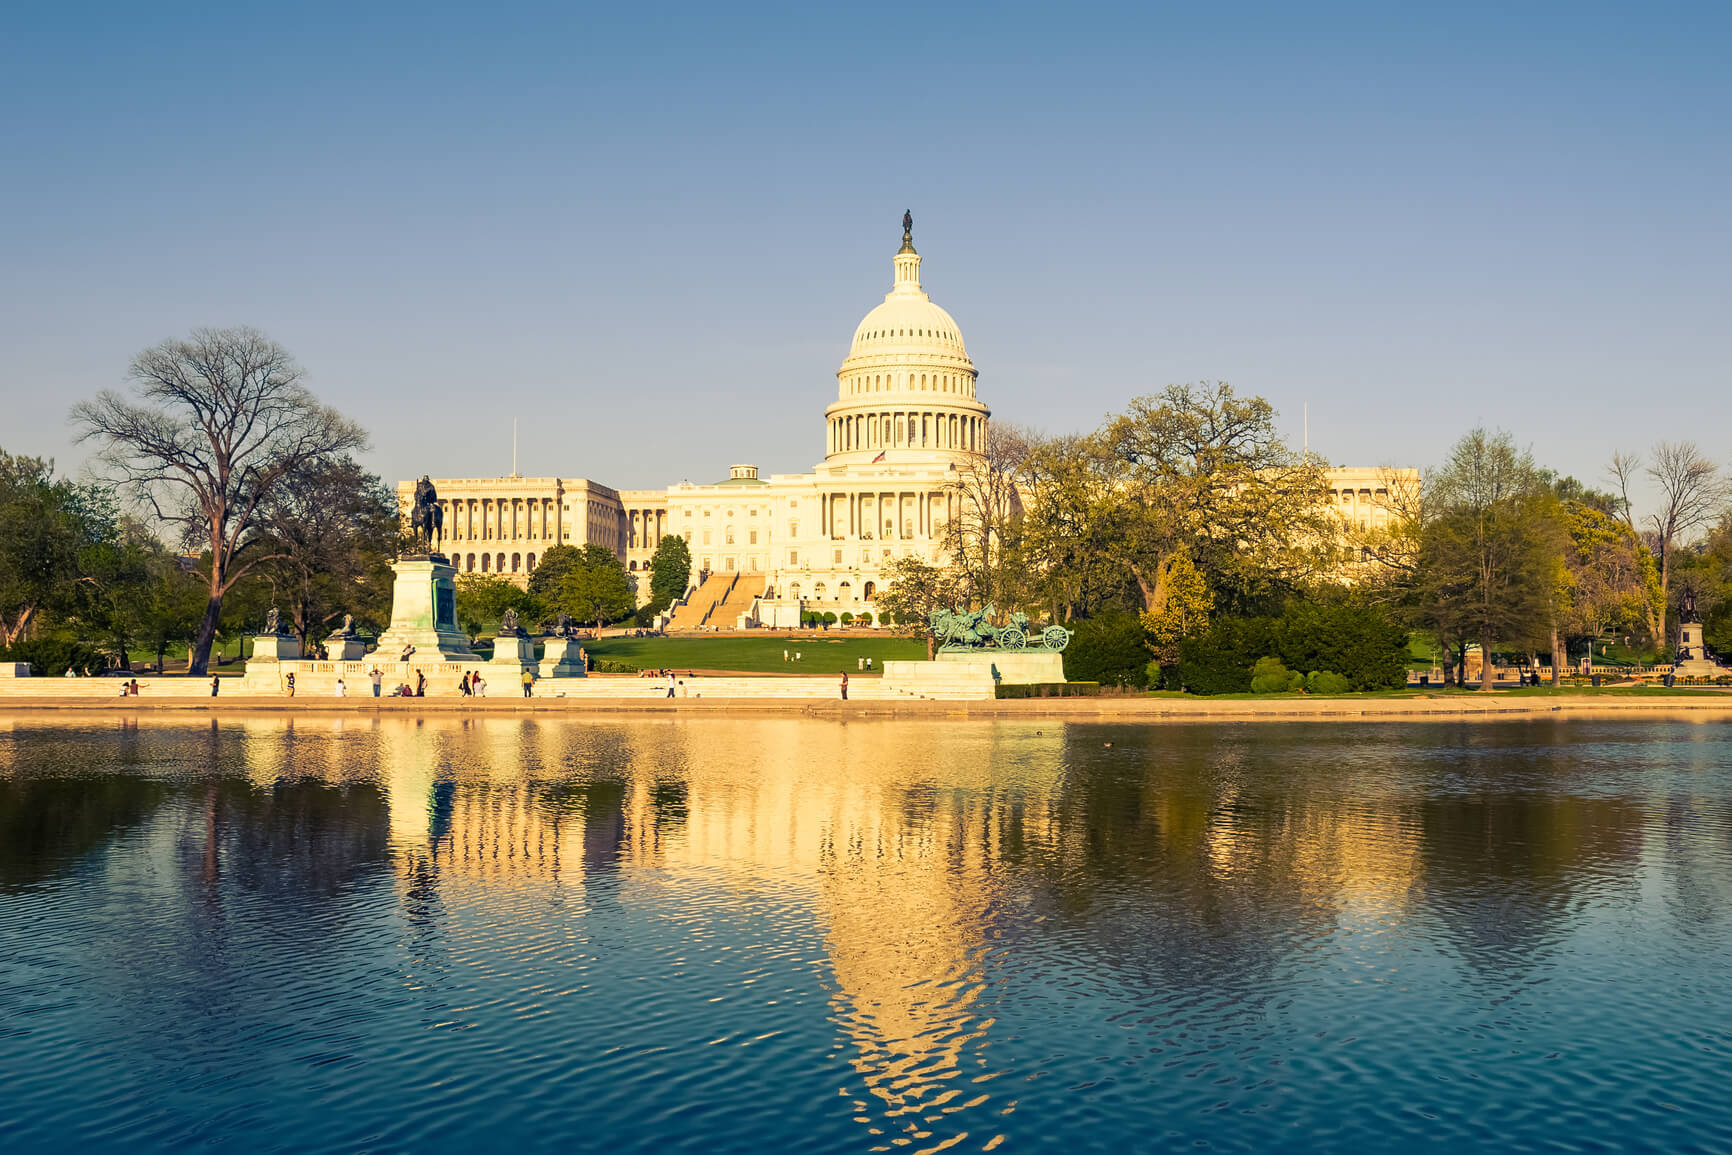 Kuwait to Washington DC, USA for only $569 USD roundtrip